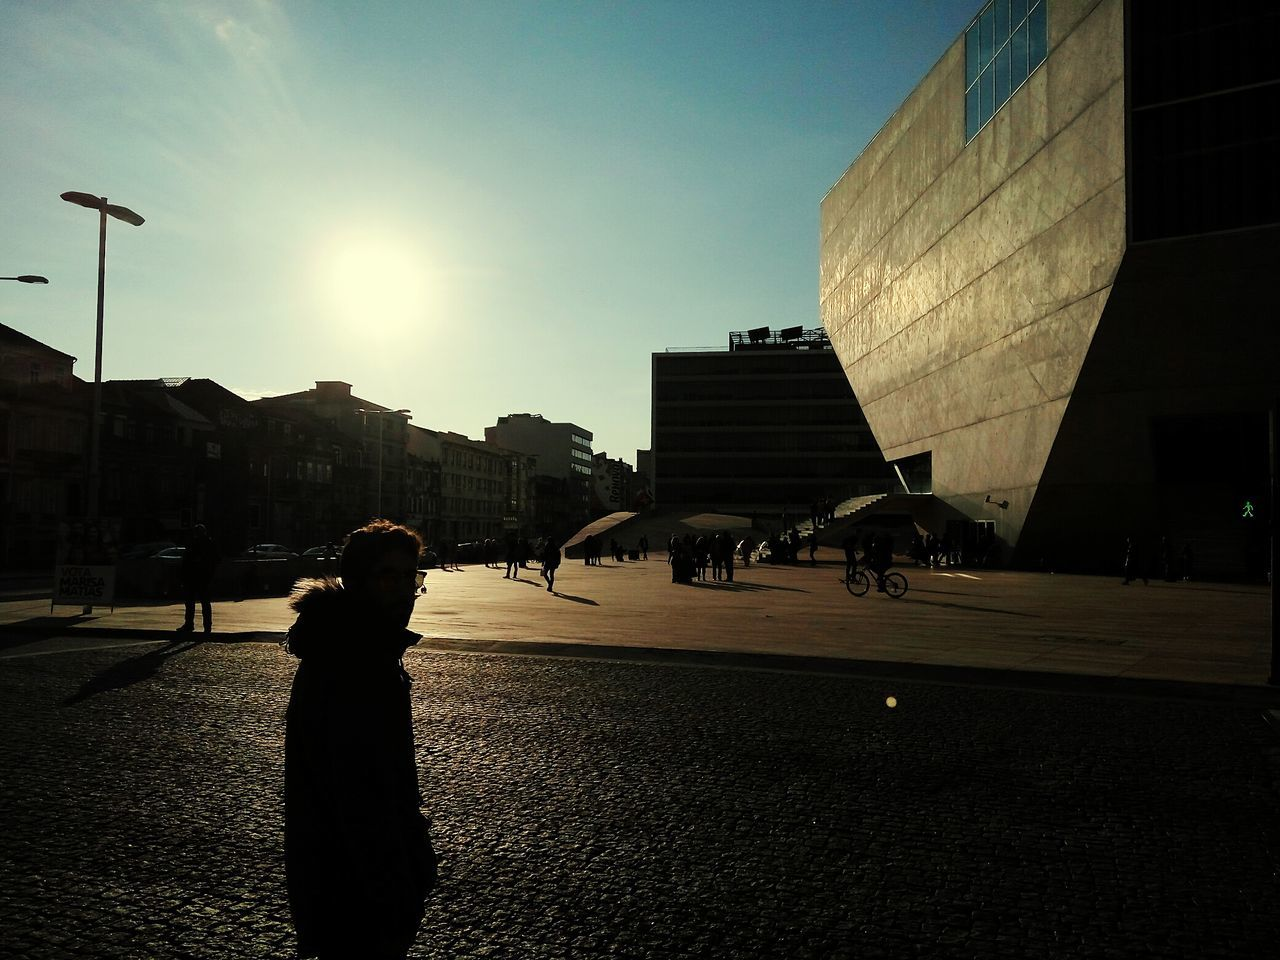 Casa Da Música Oporto, Portugal Koolhaas Arquitecture Architecture Awesome Architecture Awesome Architecture_collection Light And Shadow City Life Sunset Sunset Silhouettes Sun Archilovers Sky_collection Showcase March Buildings & Sky Architectureporn People People Of EyeEm Men Boy ExploreEverything Popular Photos Exploretocreate